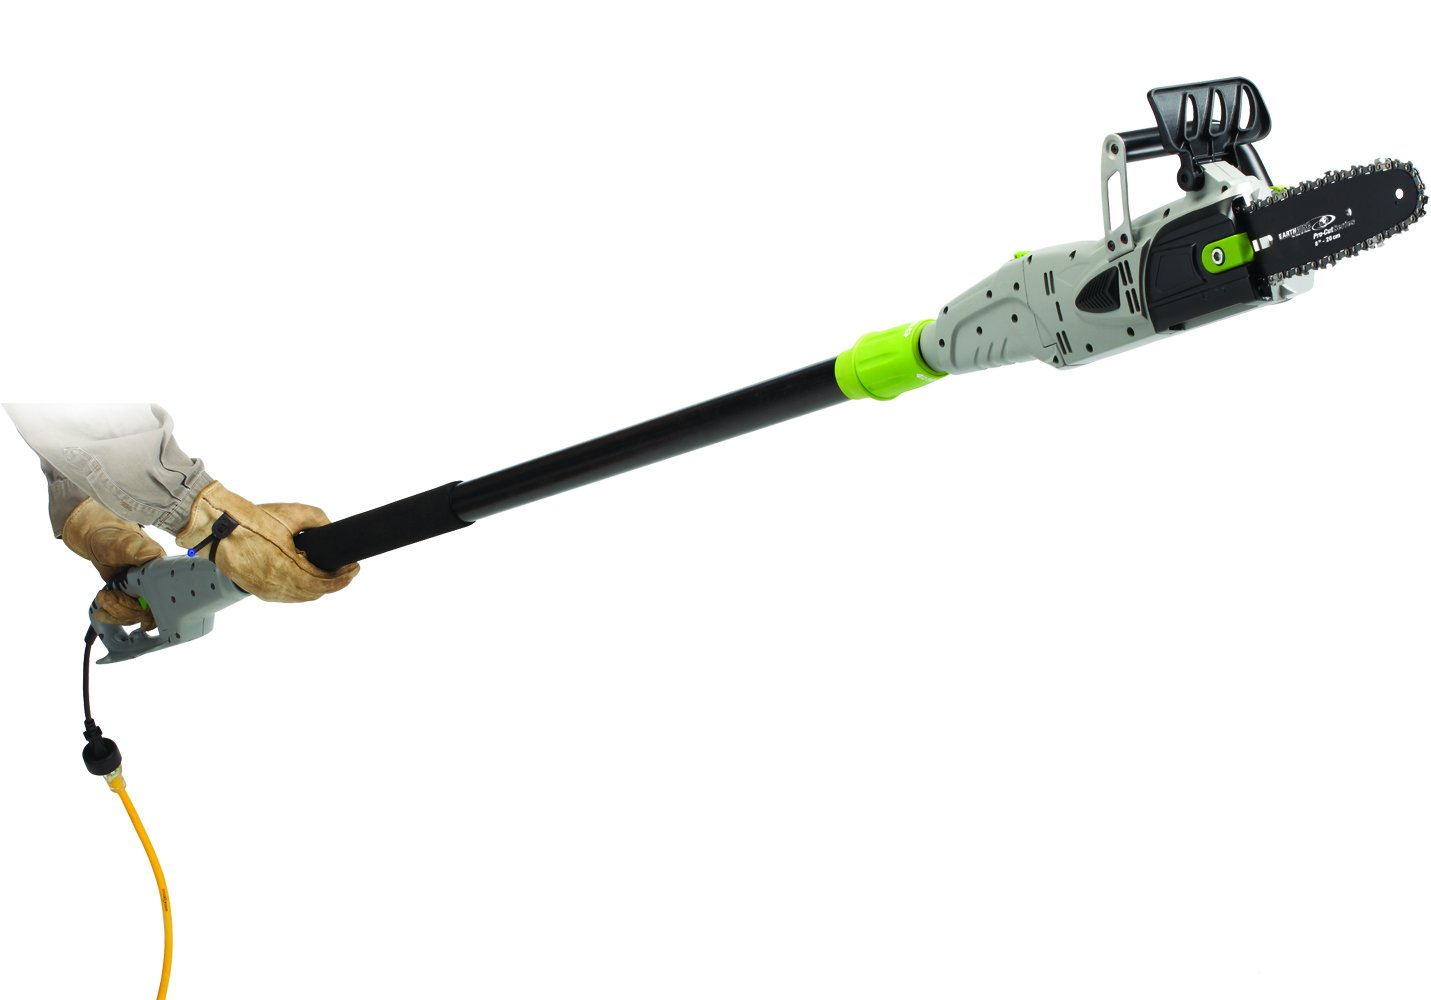 Earthwise CVPS41008 Electric Pool Saw